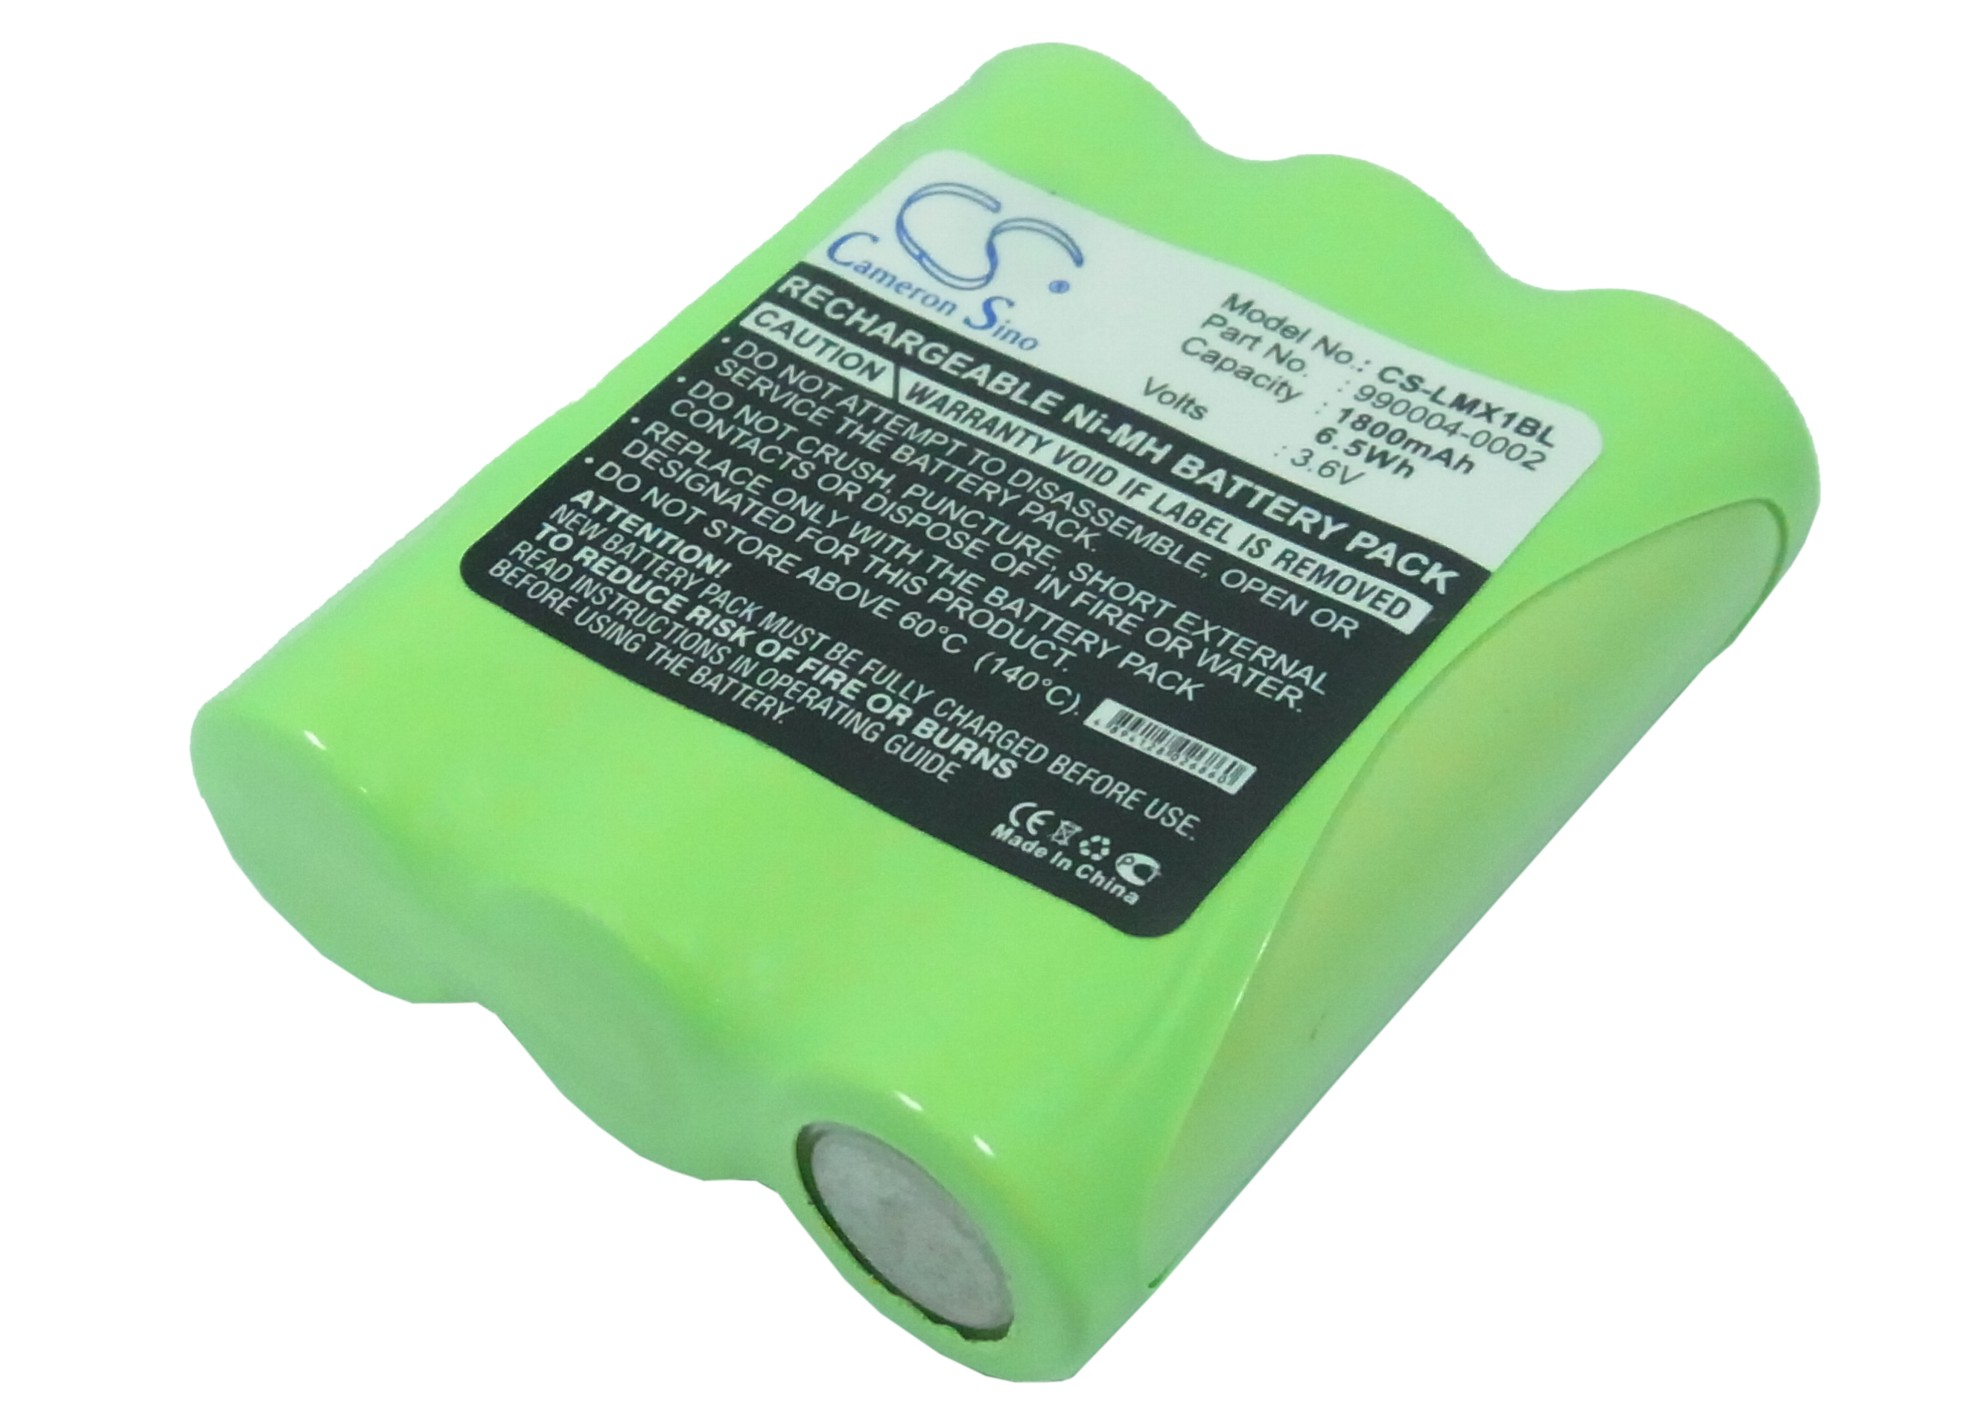 Banshee Replacement Battery for LXE 00-864-00, 990004-0002, H150AA3PF, PS21H2-A, PS21H2-D, PS21H3-D 1800mAh